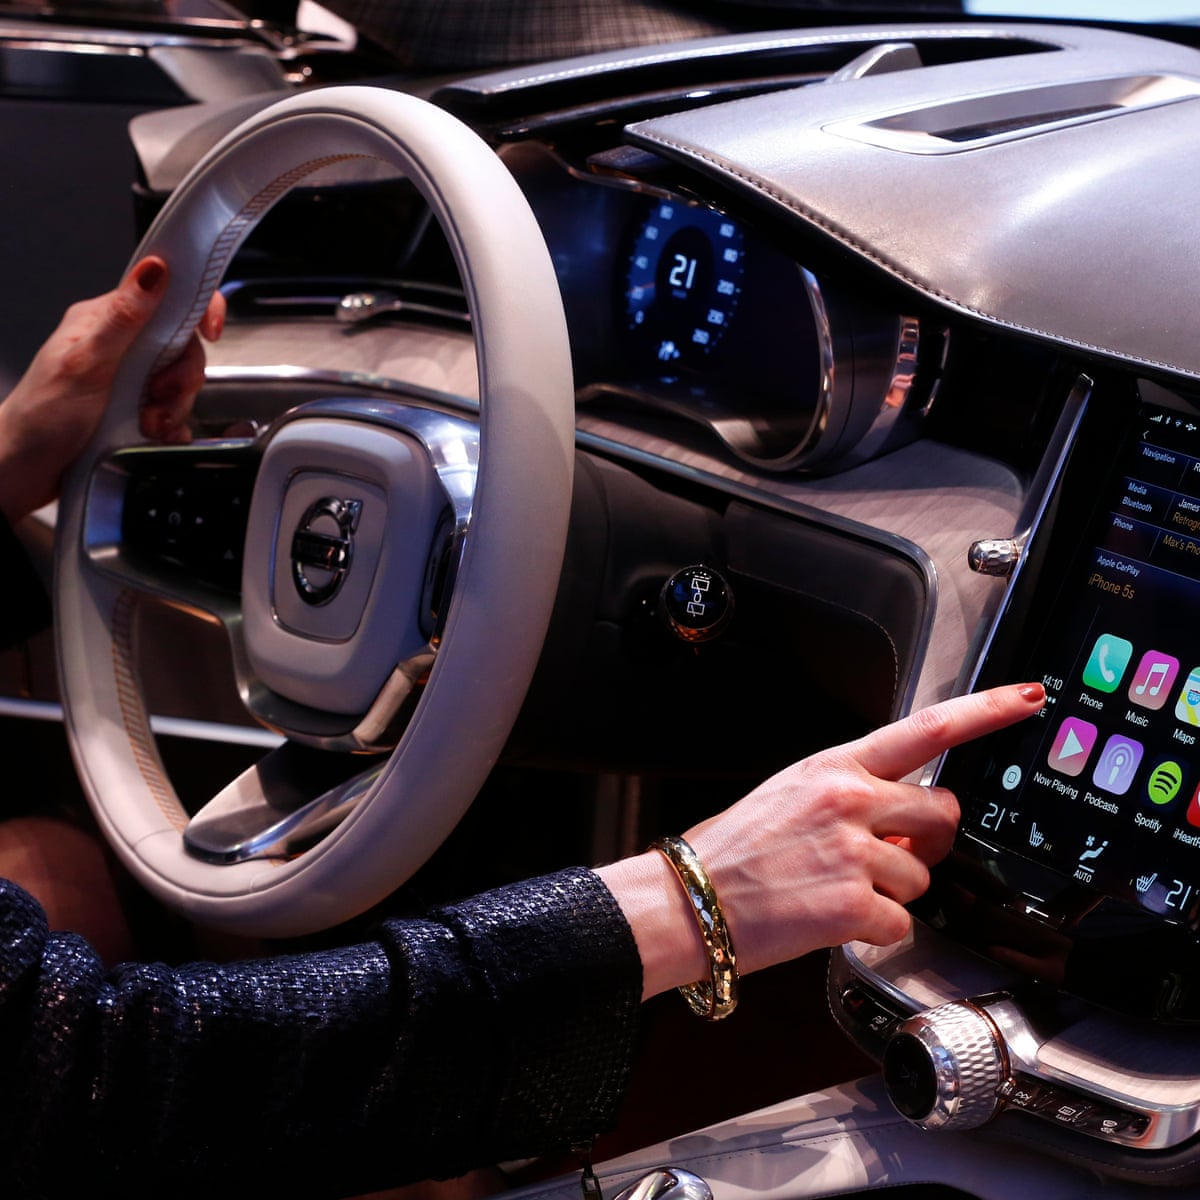 Coming Soon To New Cars And Trucks Infotainment Systems Are Smart Stereos Automotive Industry The Guardian